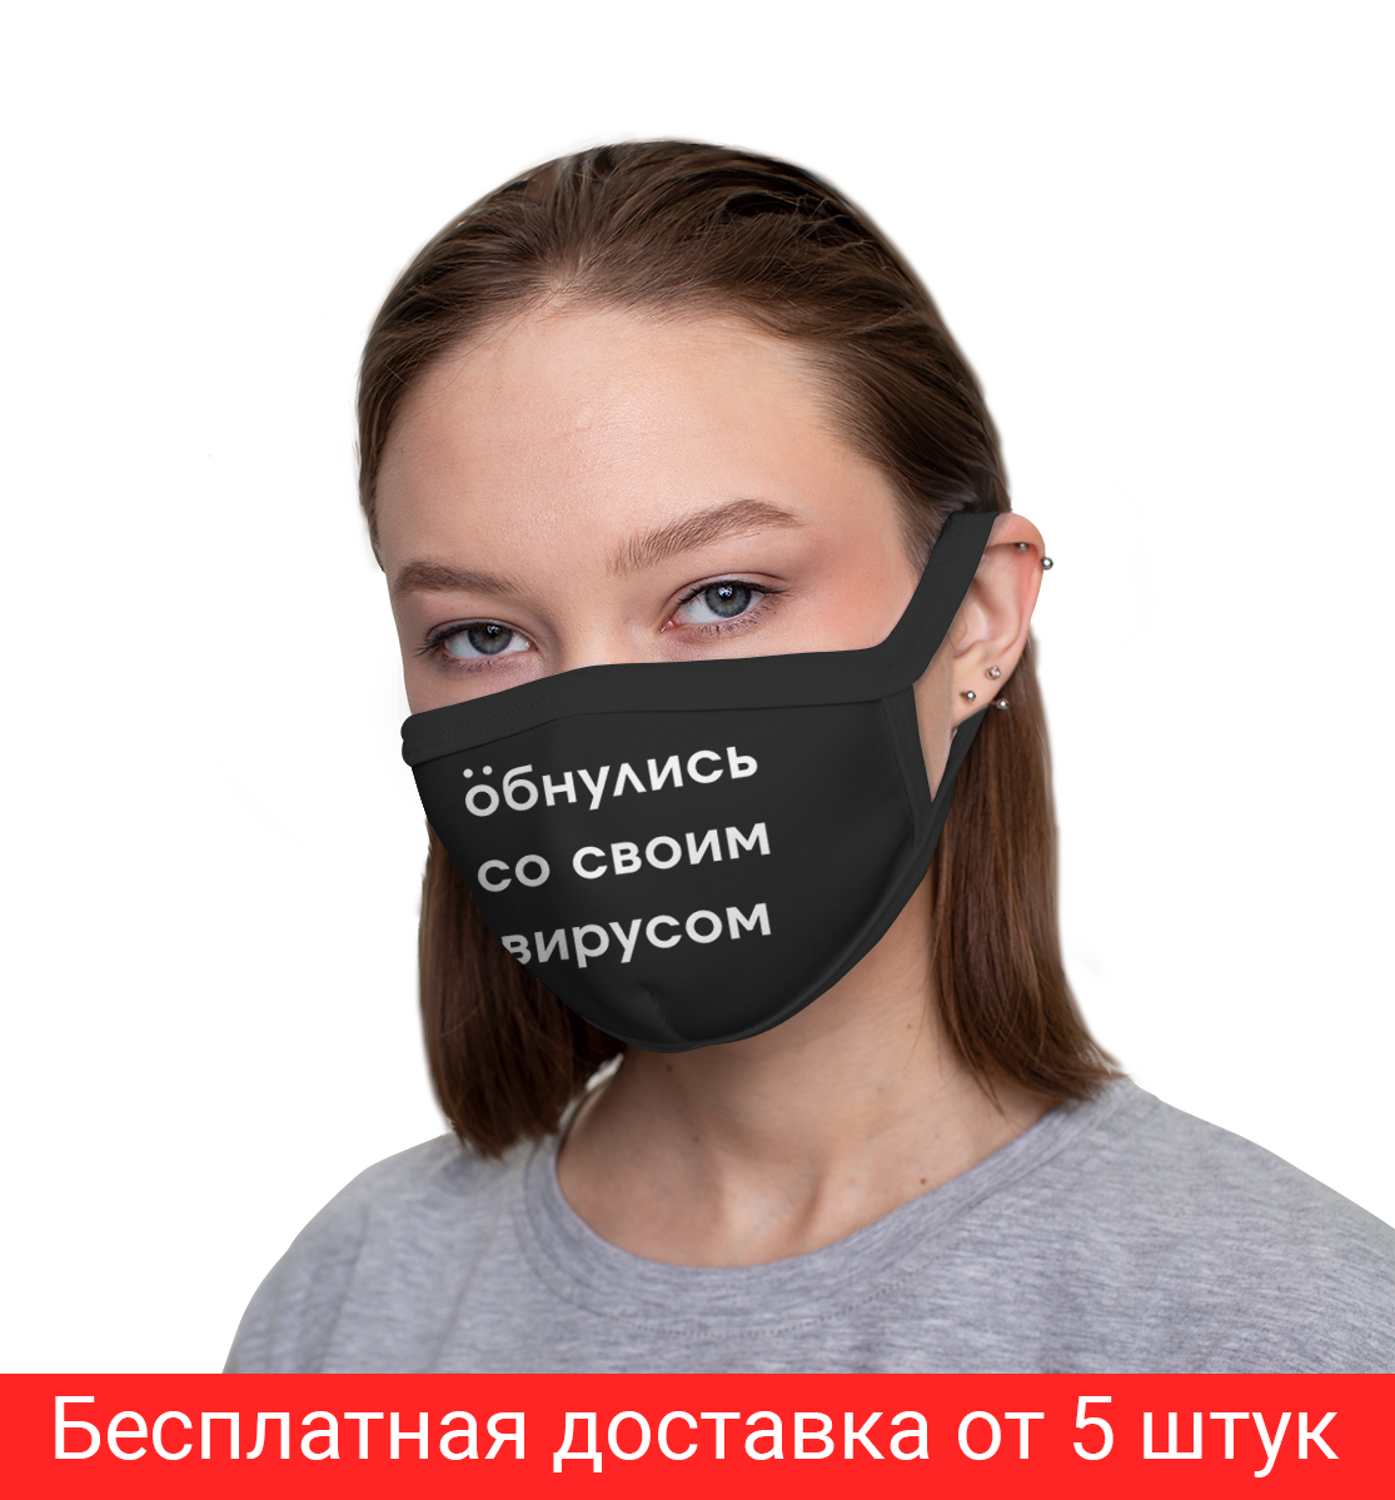 Mask Protective Cloth обнулись With His вирусом, Stylish Trend Cool Accessory, Anti Dust And Viruses